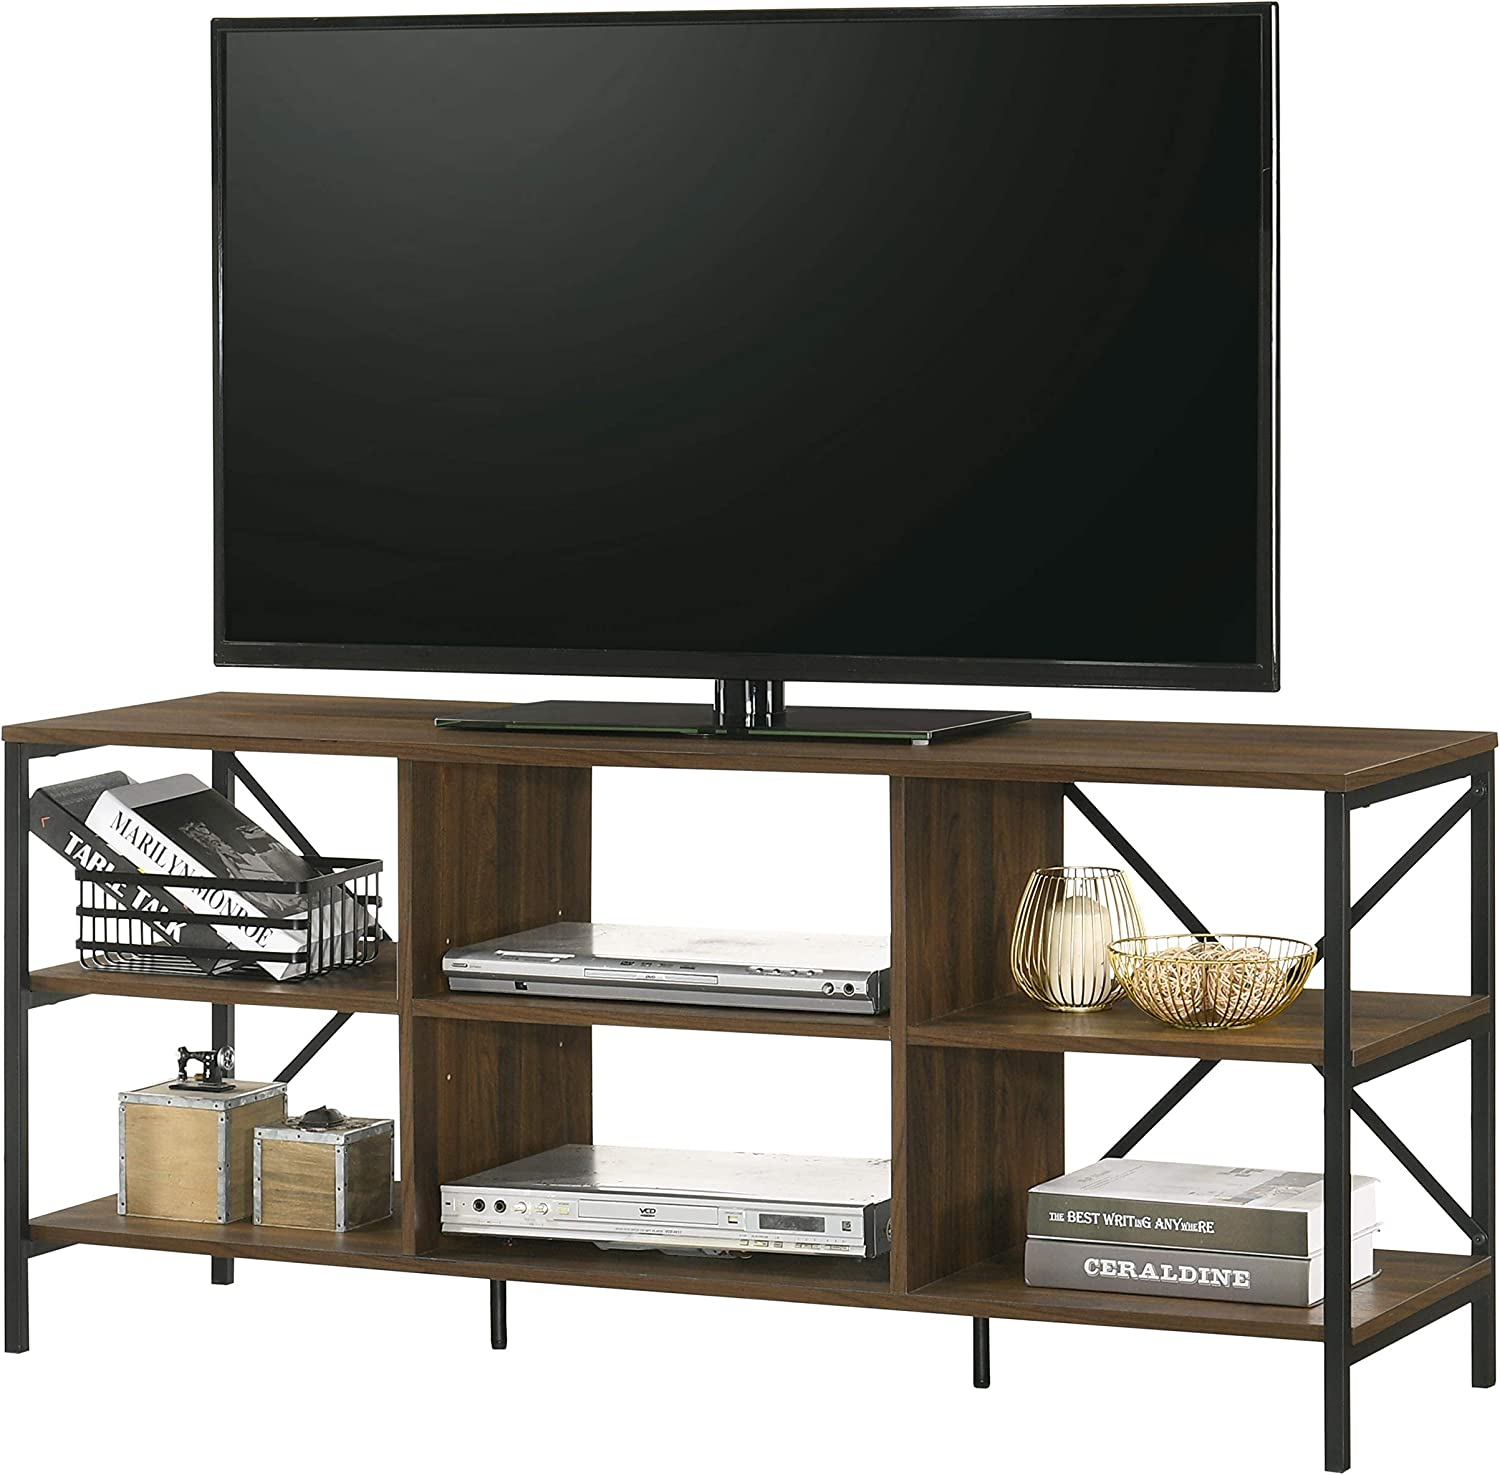 Furnitela Entertainment Center for 55 inch TV, Electronics Friendly TV Stand, Walnut Color Console Table with Storage